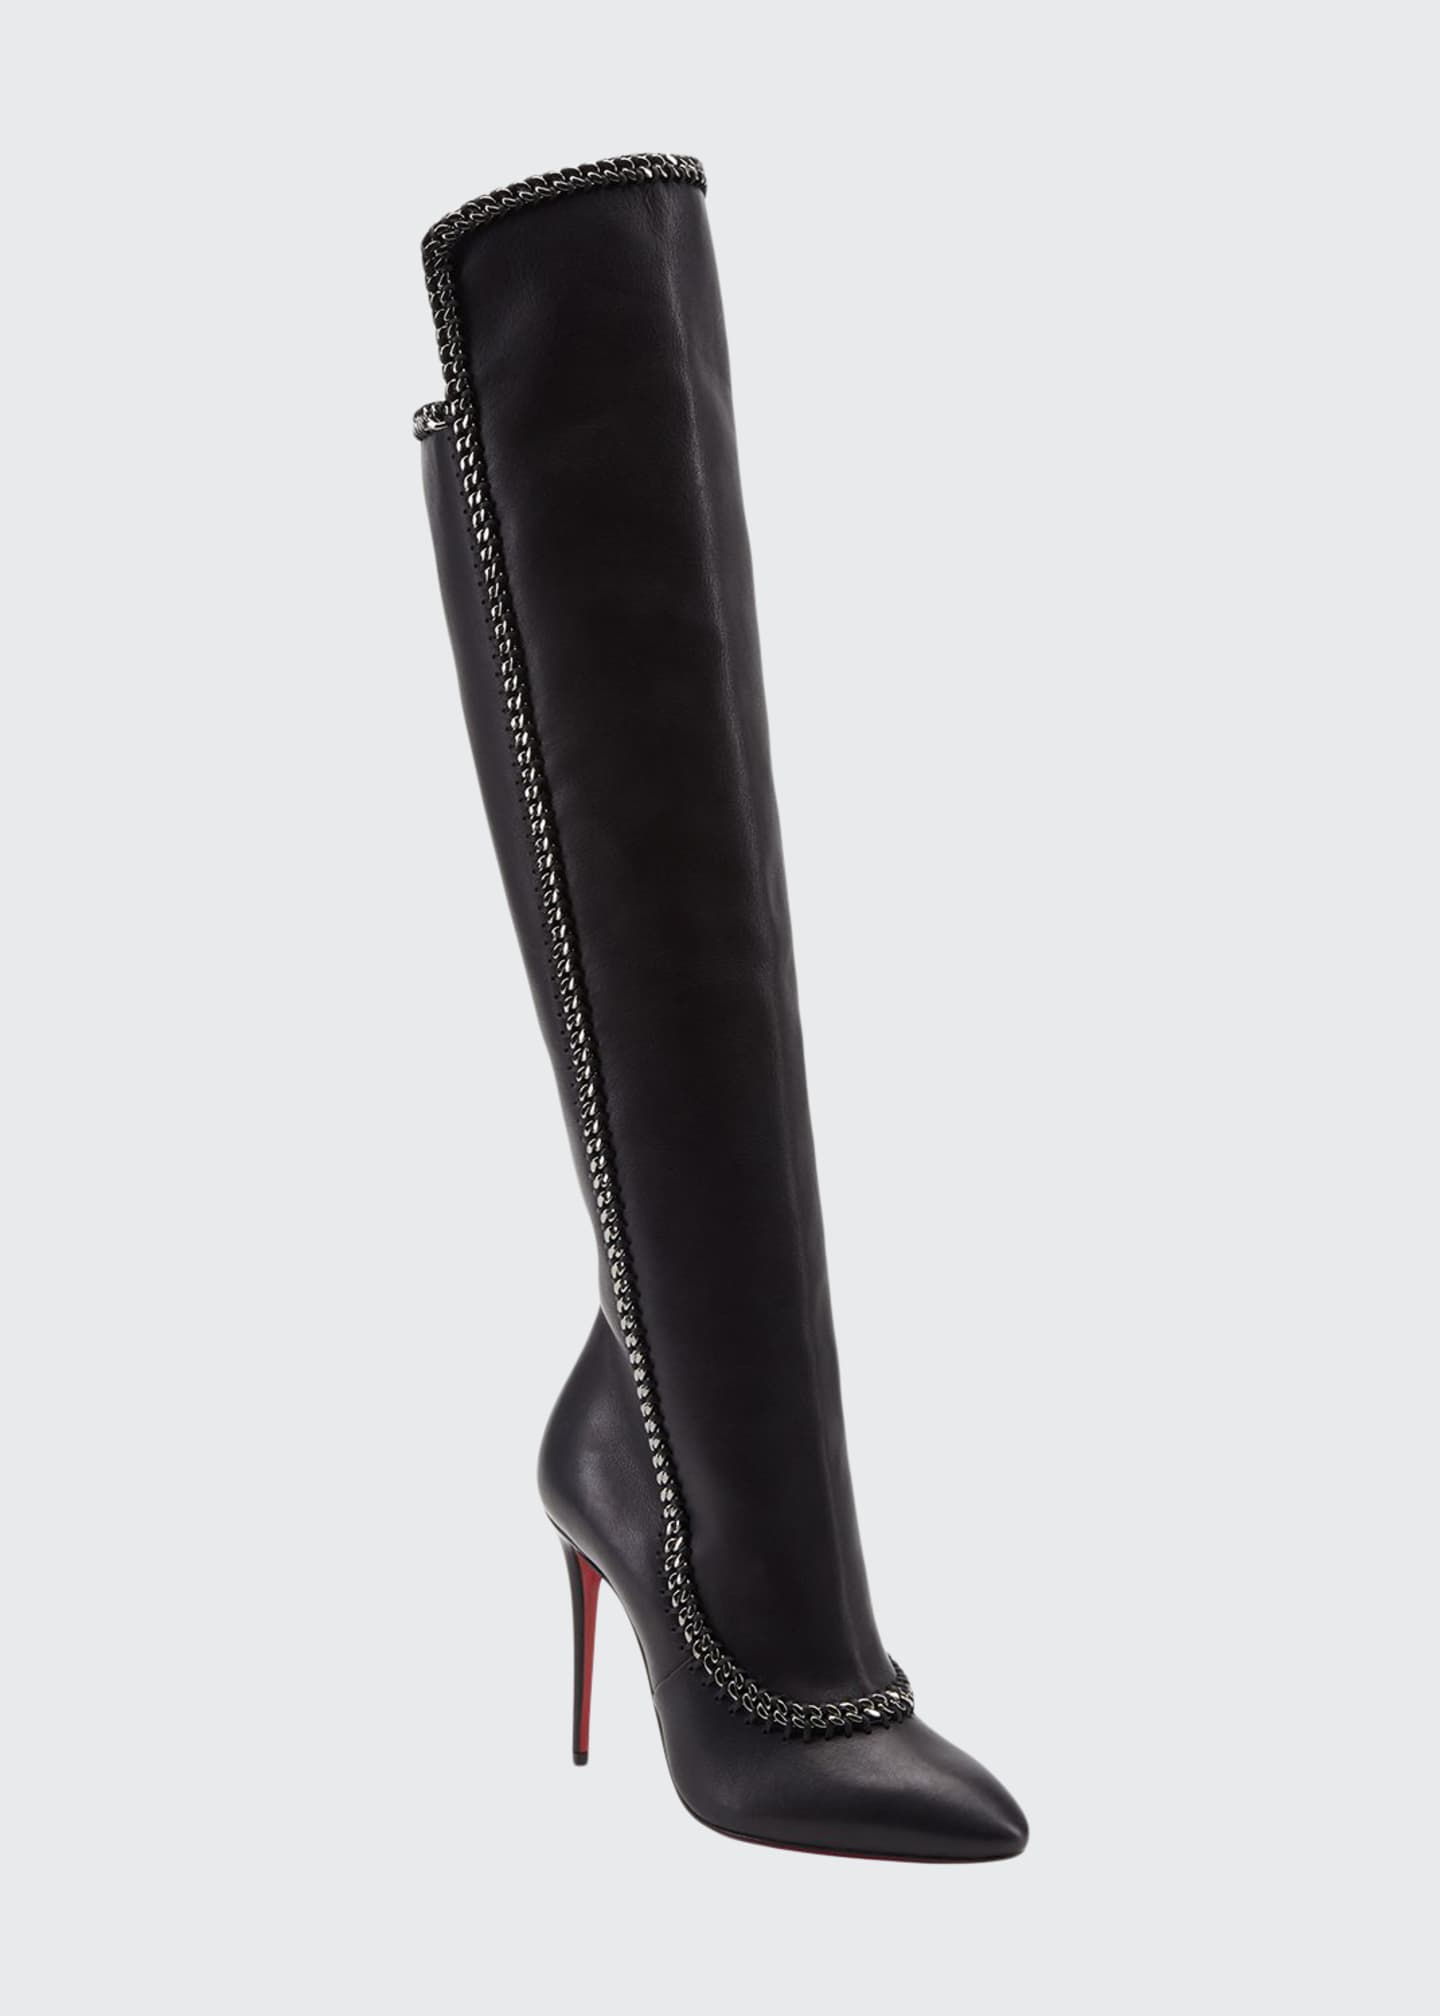 Christian Louboutin Clemence Botta Red Sole Boots